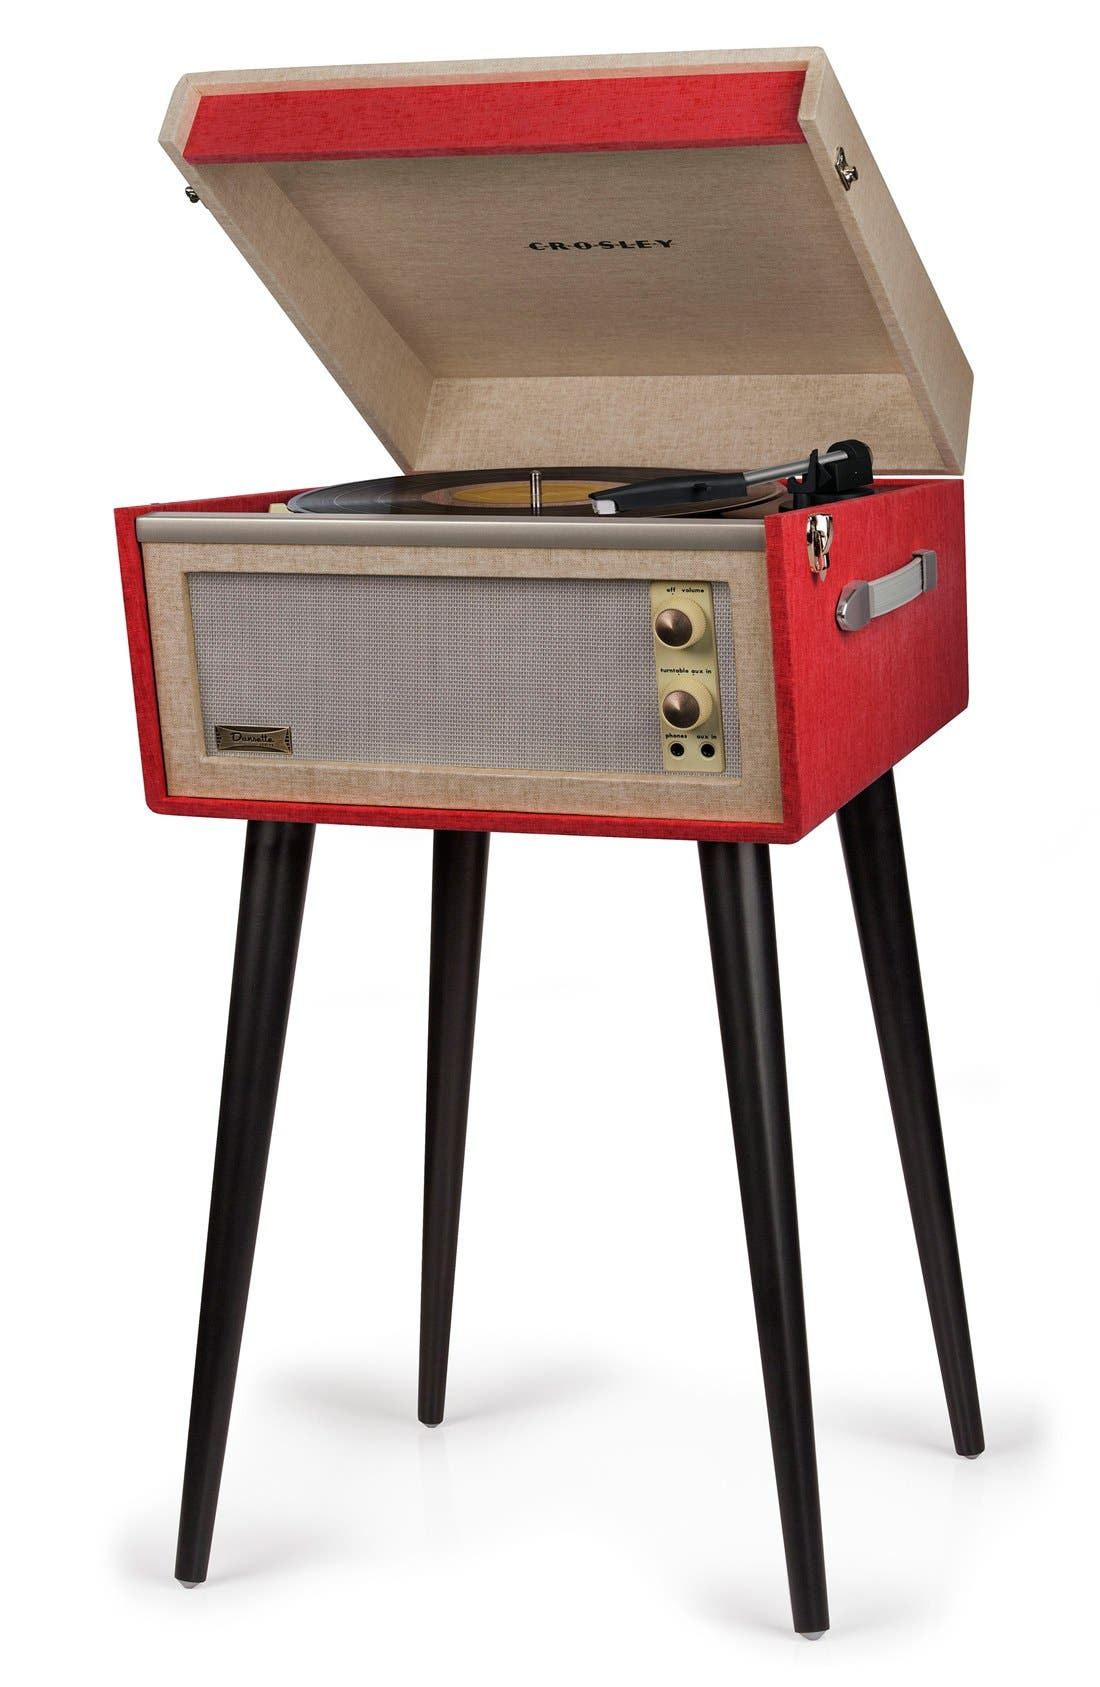 CROSLEY RADIO 'Bermuda' Turntable